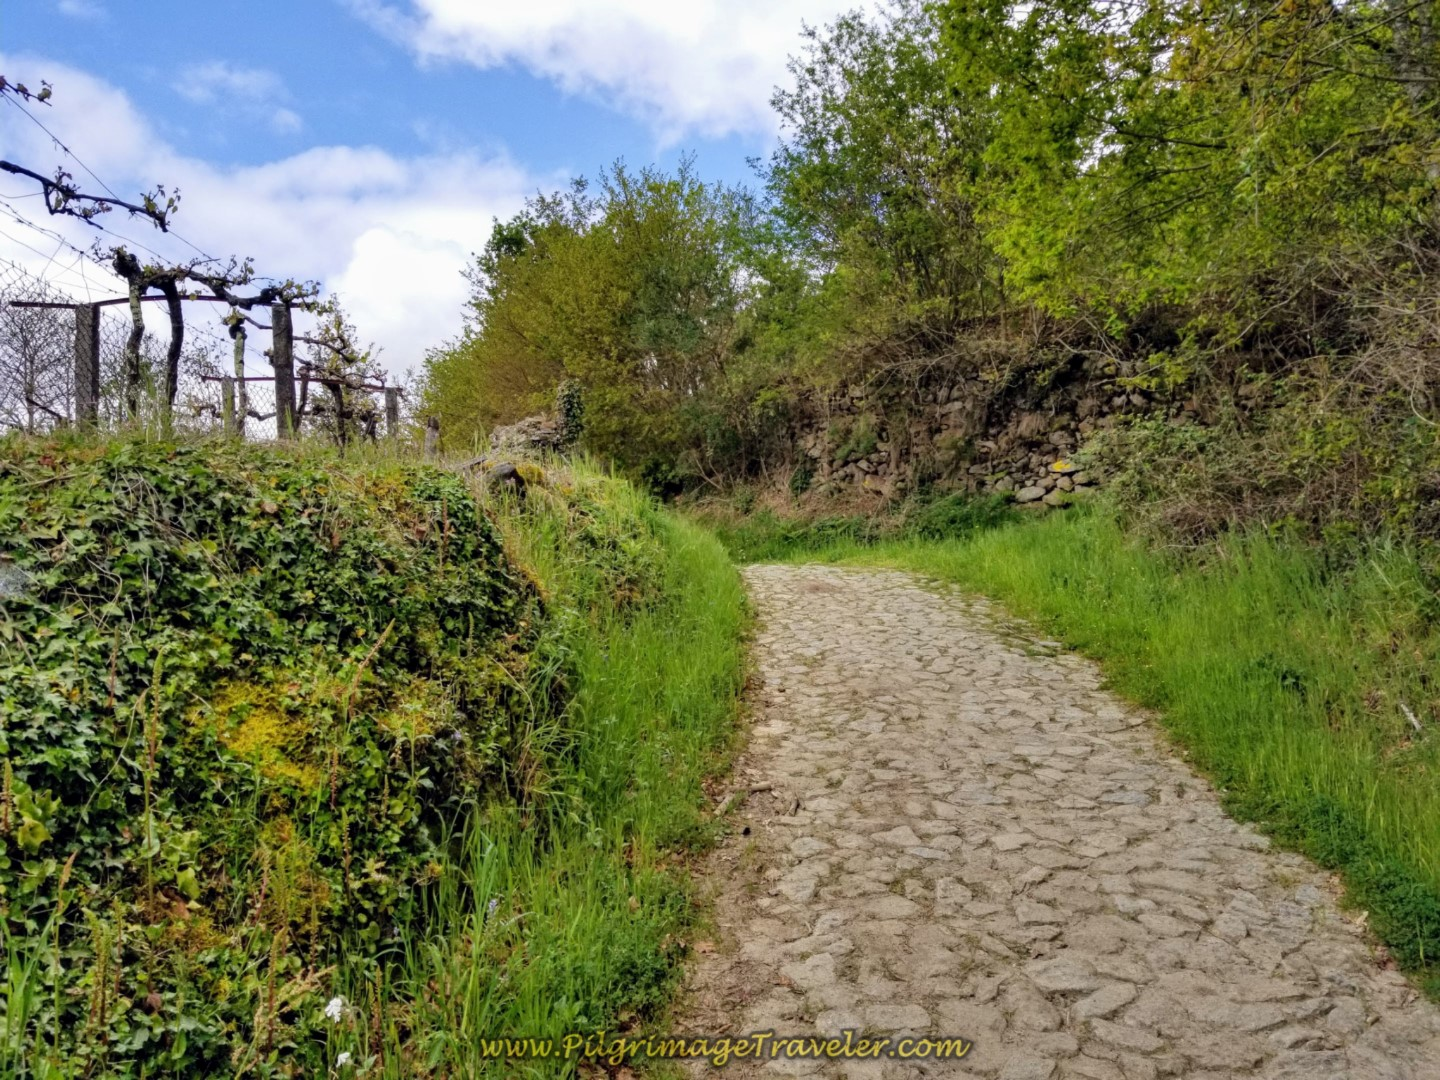 Up the Hill on More Cobblestone on day eighteen on the Central Route of the Portuguese Camino